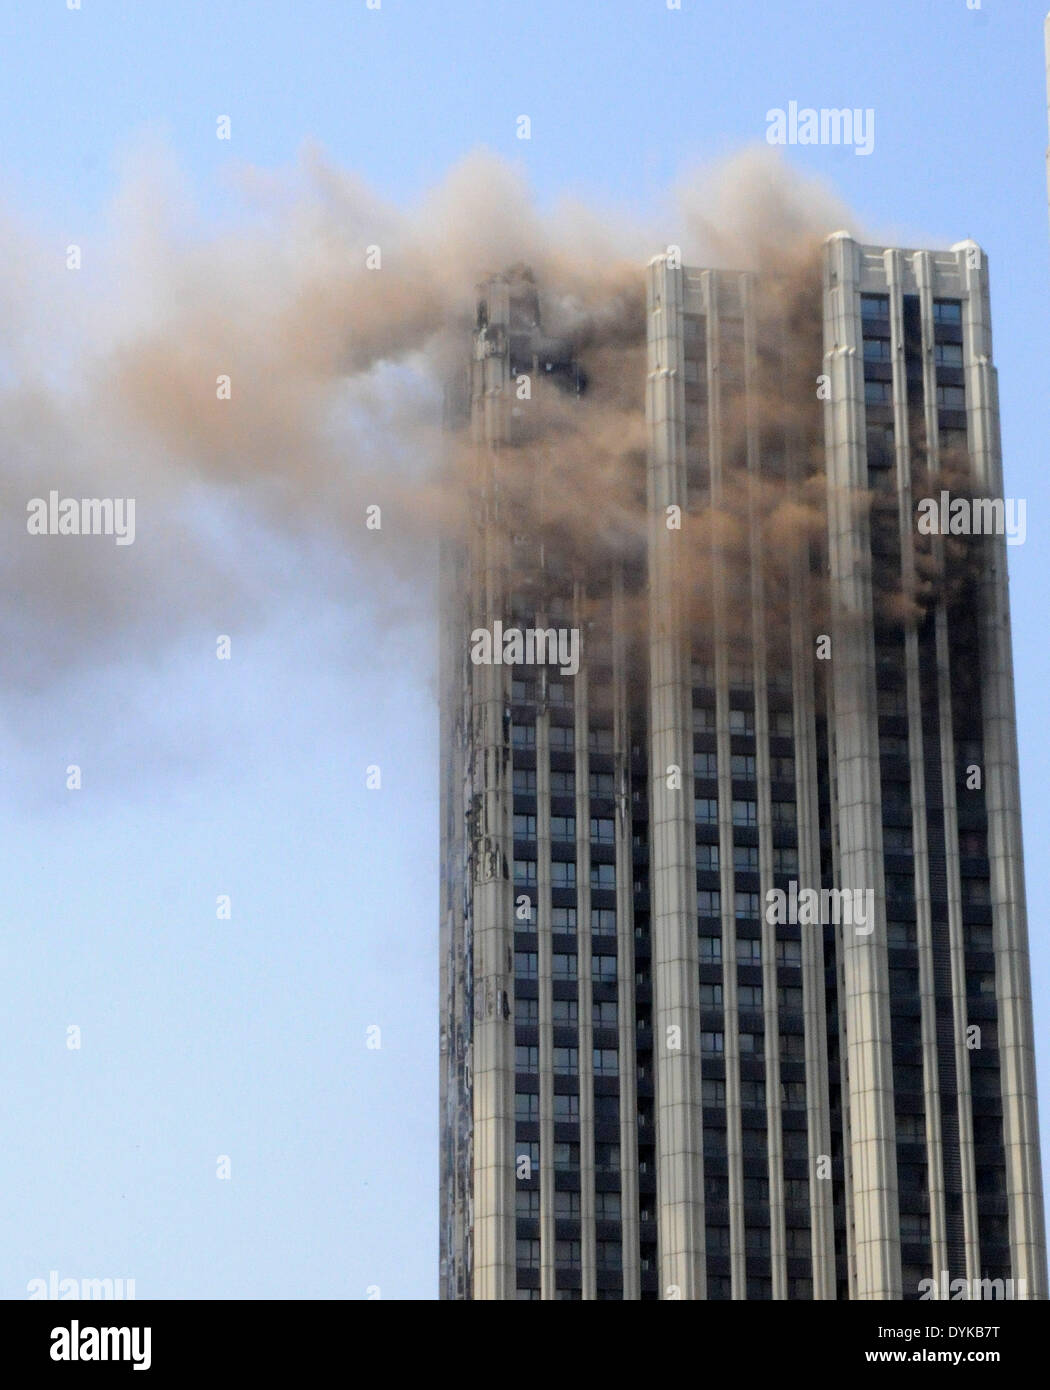 Dalian, China's Liaoning Province. 21st Apr, 2014. Insulating layers of a high-rise residential building is on fire at Xinghai Square in Dalian, northeast China's Liaoning Province, April 21, 2014. The fire, which was found at 11 a.m. on April 21, has been extinguished and no casualties were reported by far. Credit:  Cai Yongjun/Xinhua/Alamy Live News - Stock Image